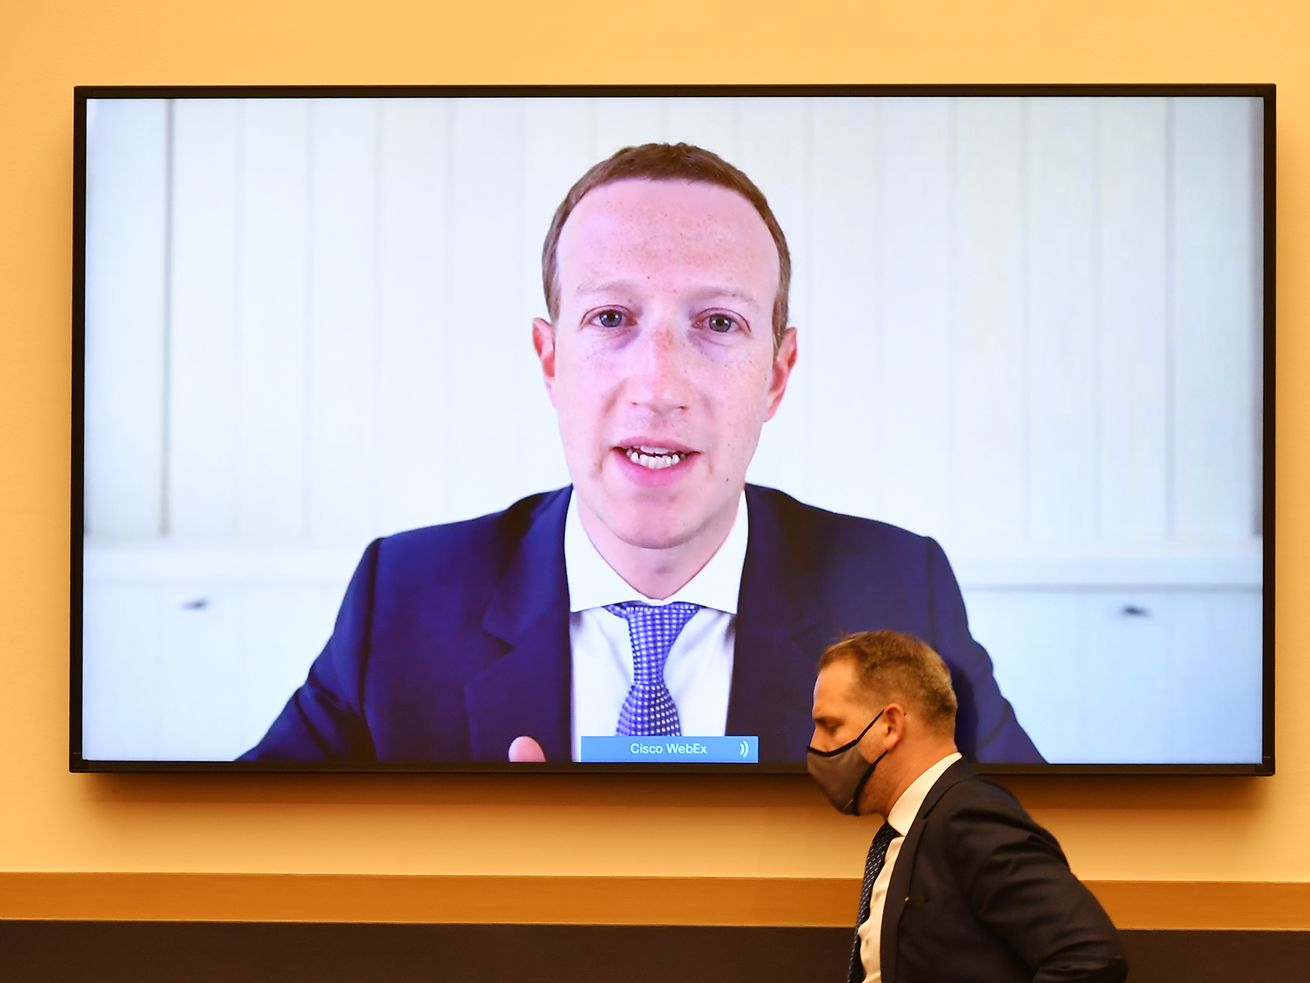 Mark Zuckerberg's face on a large television screen.